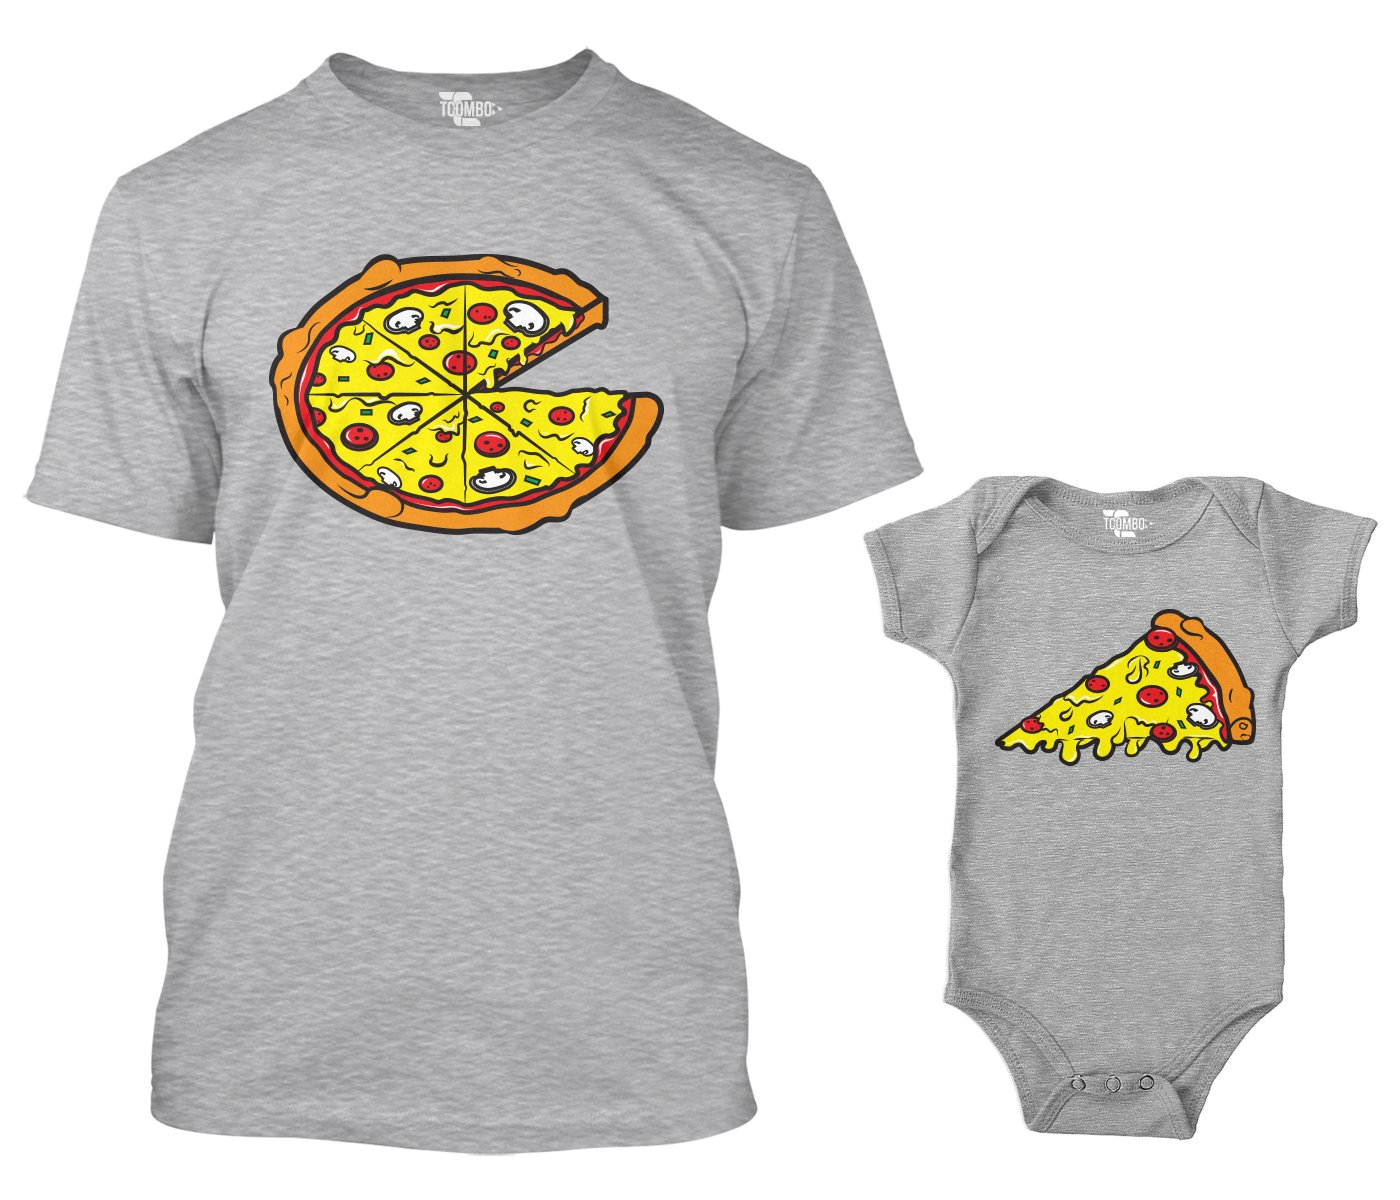 Pizza Pie/Slice Matching Bodysuit & Men's T-Shirt (Light Gray/Light Gray, Large/6 Months) by Tcombo